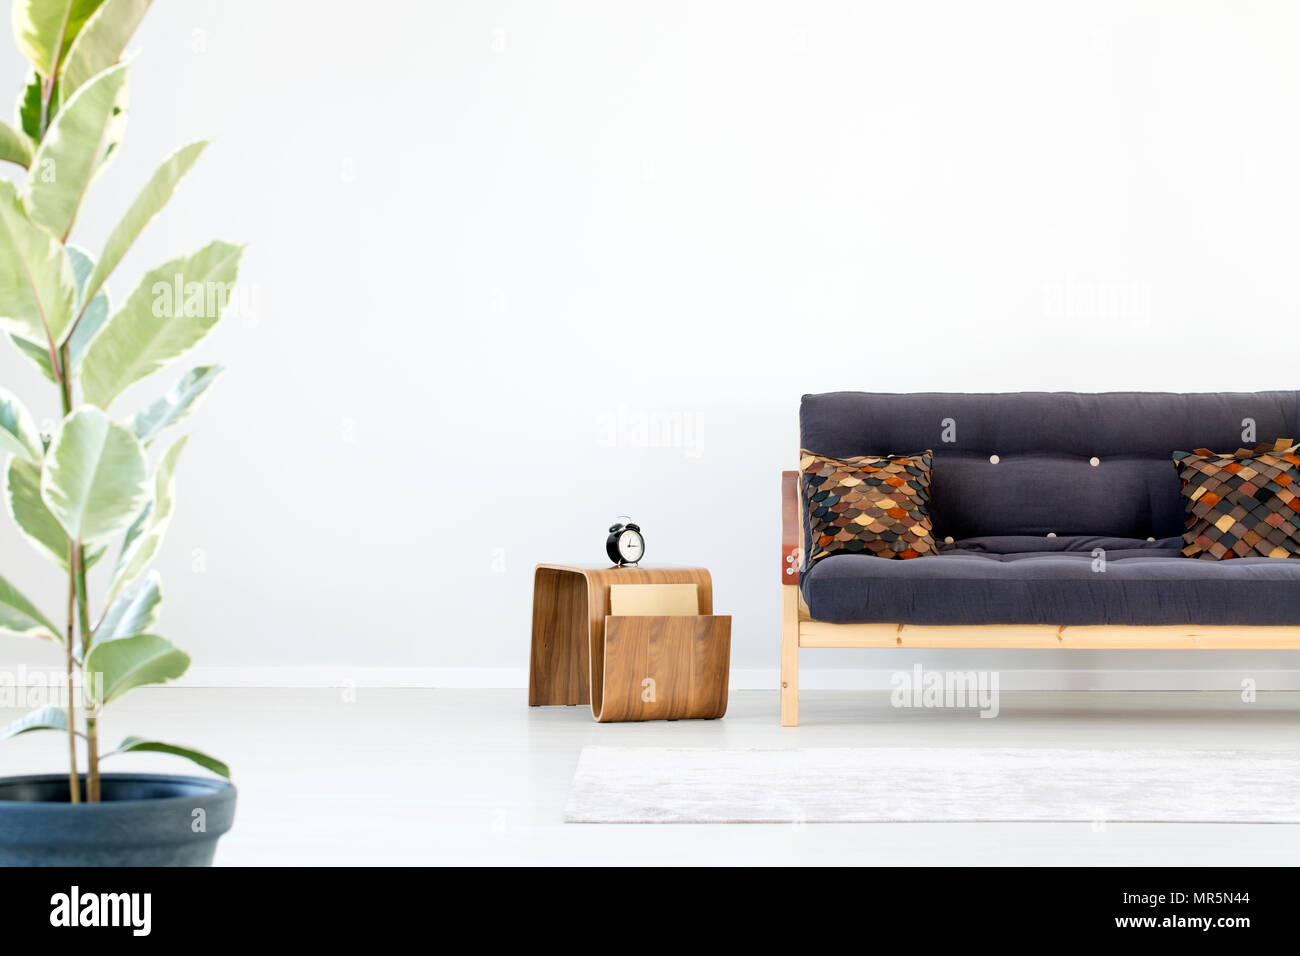 Clock on wooden table next to dark sofa with patterned brown pillows ...